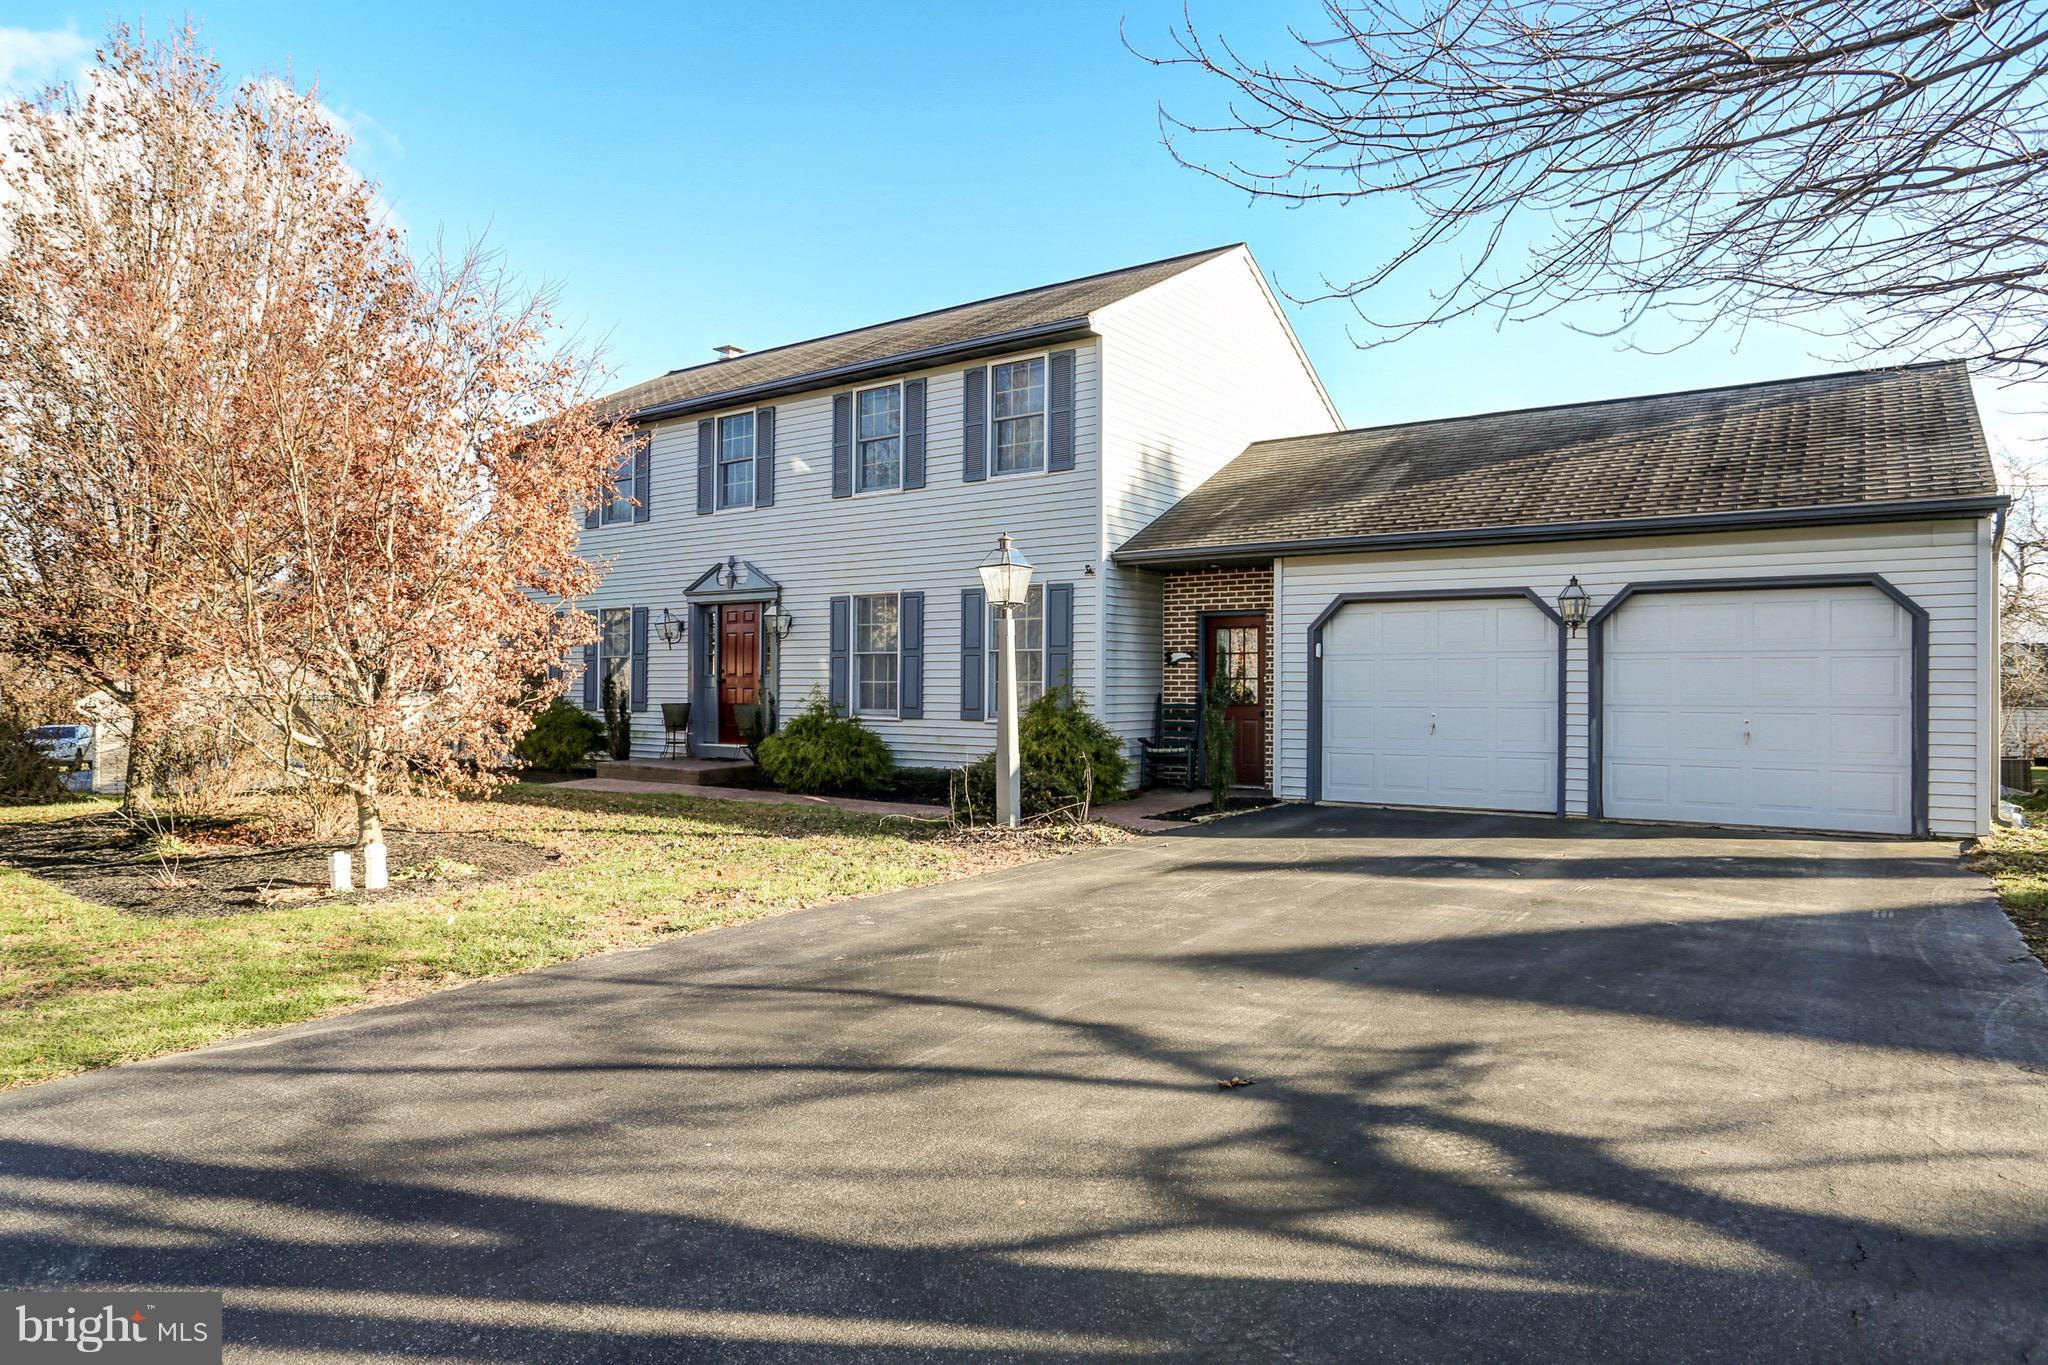 3838 STERLING WAY, COLUMBIA, PA 17512